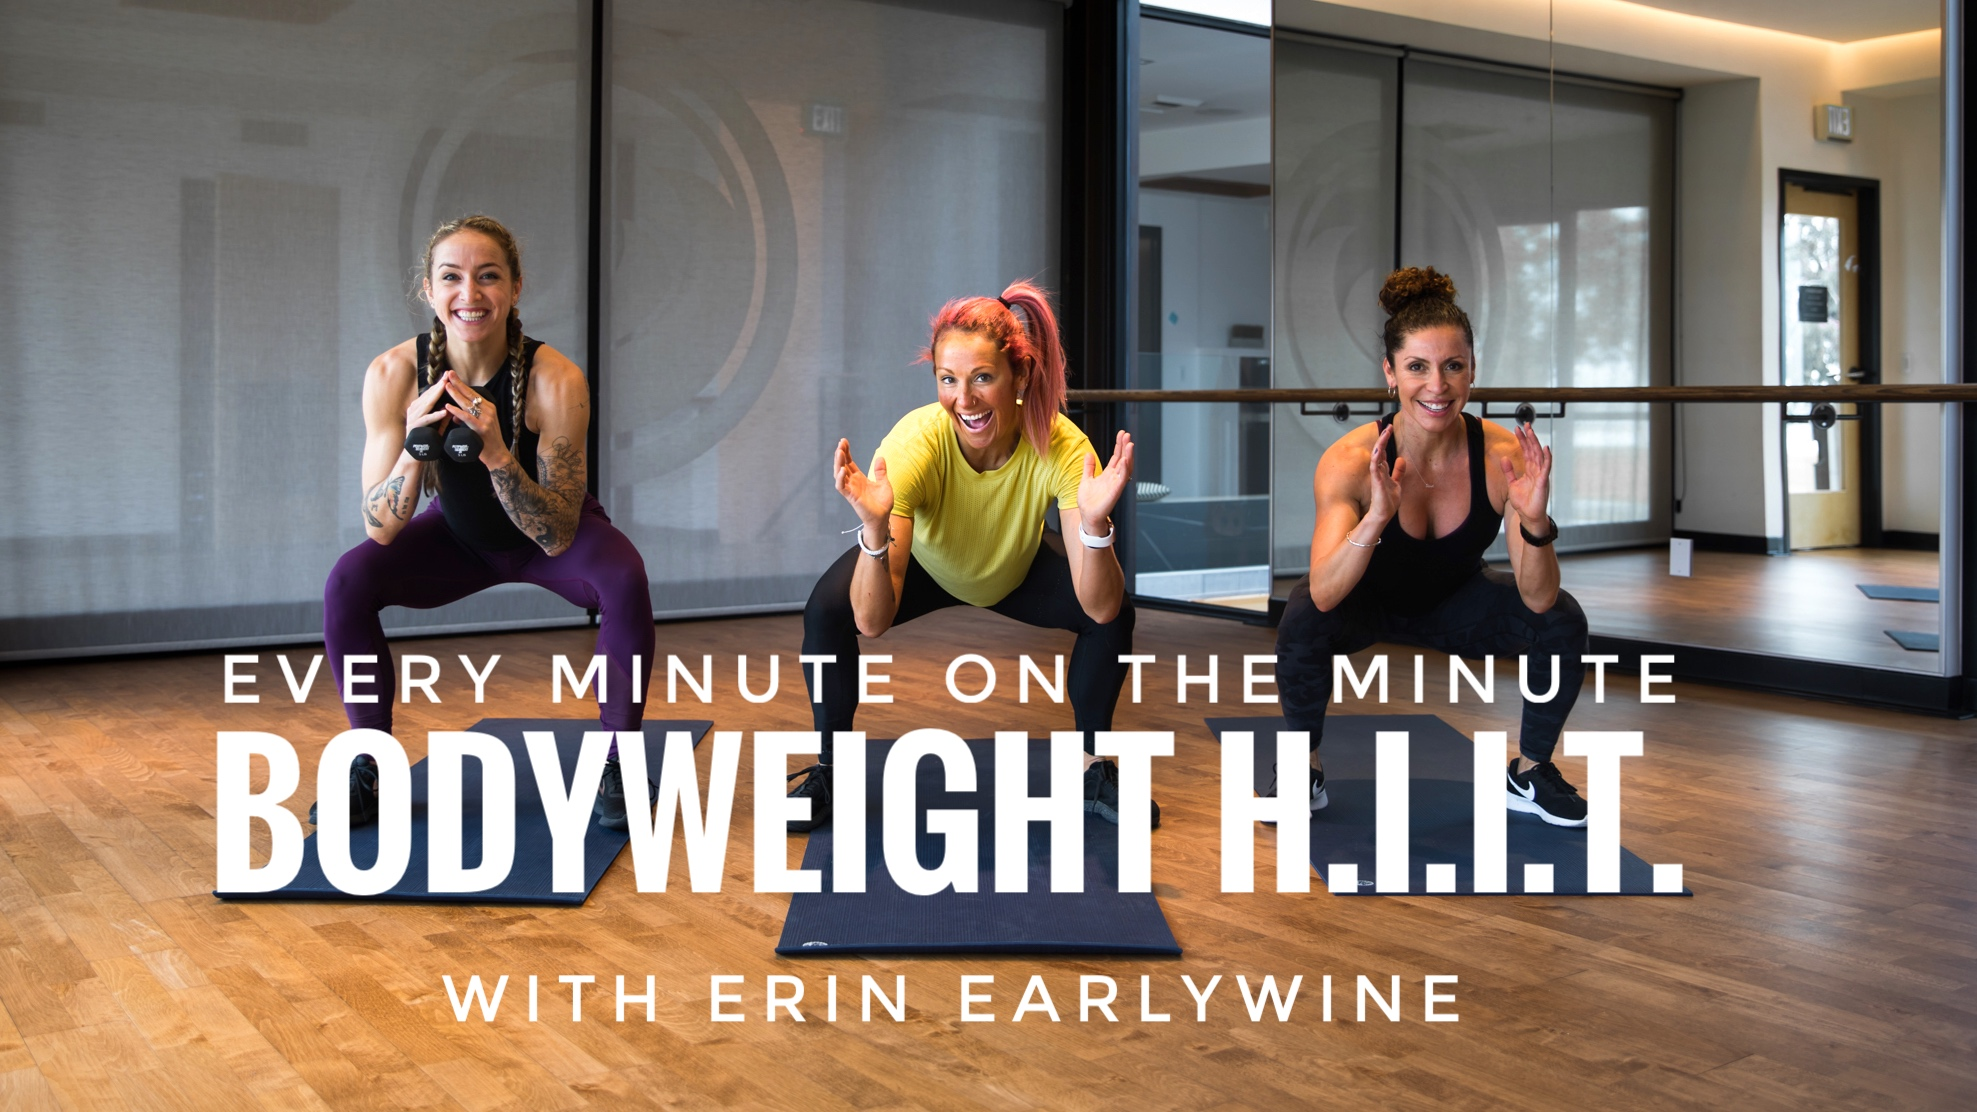 E.M.O.M. Bodyweight H.I.I.T. with Erin Earlywine